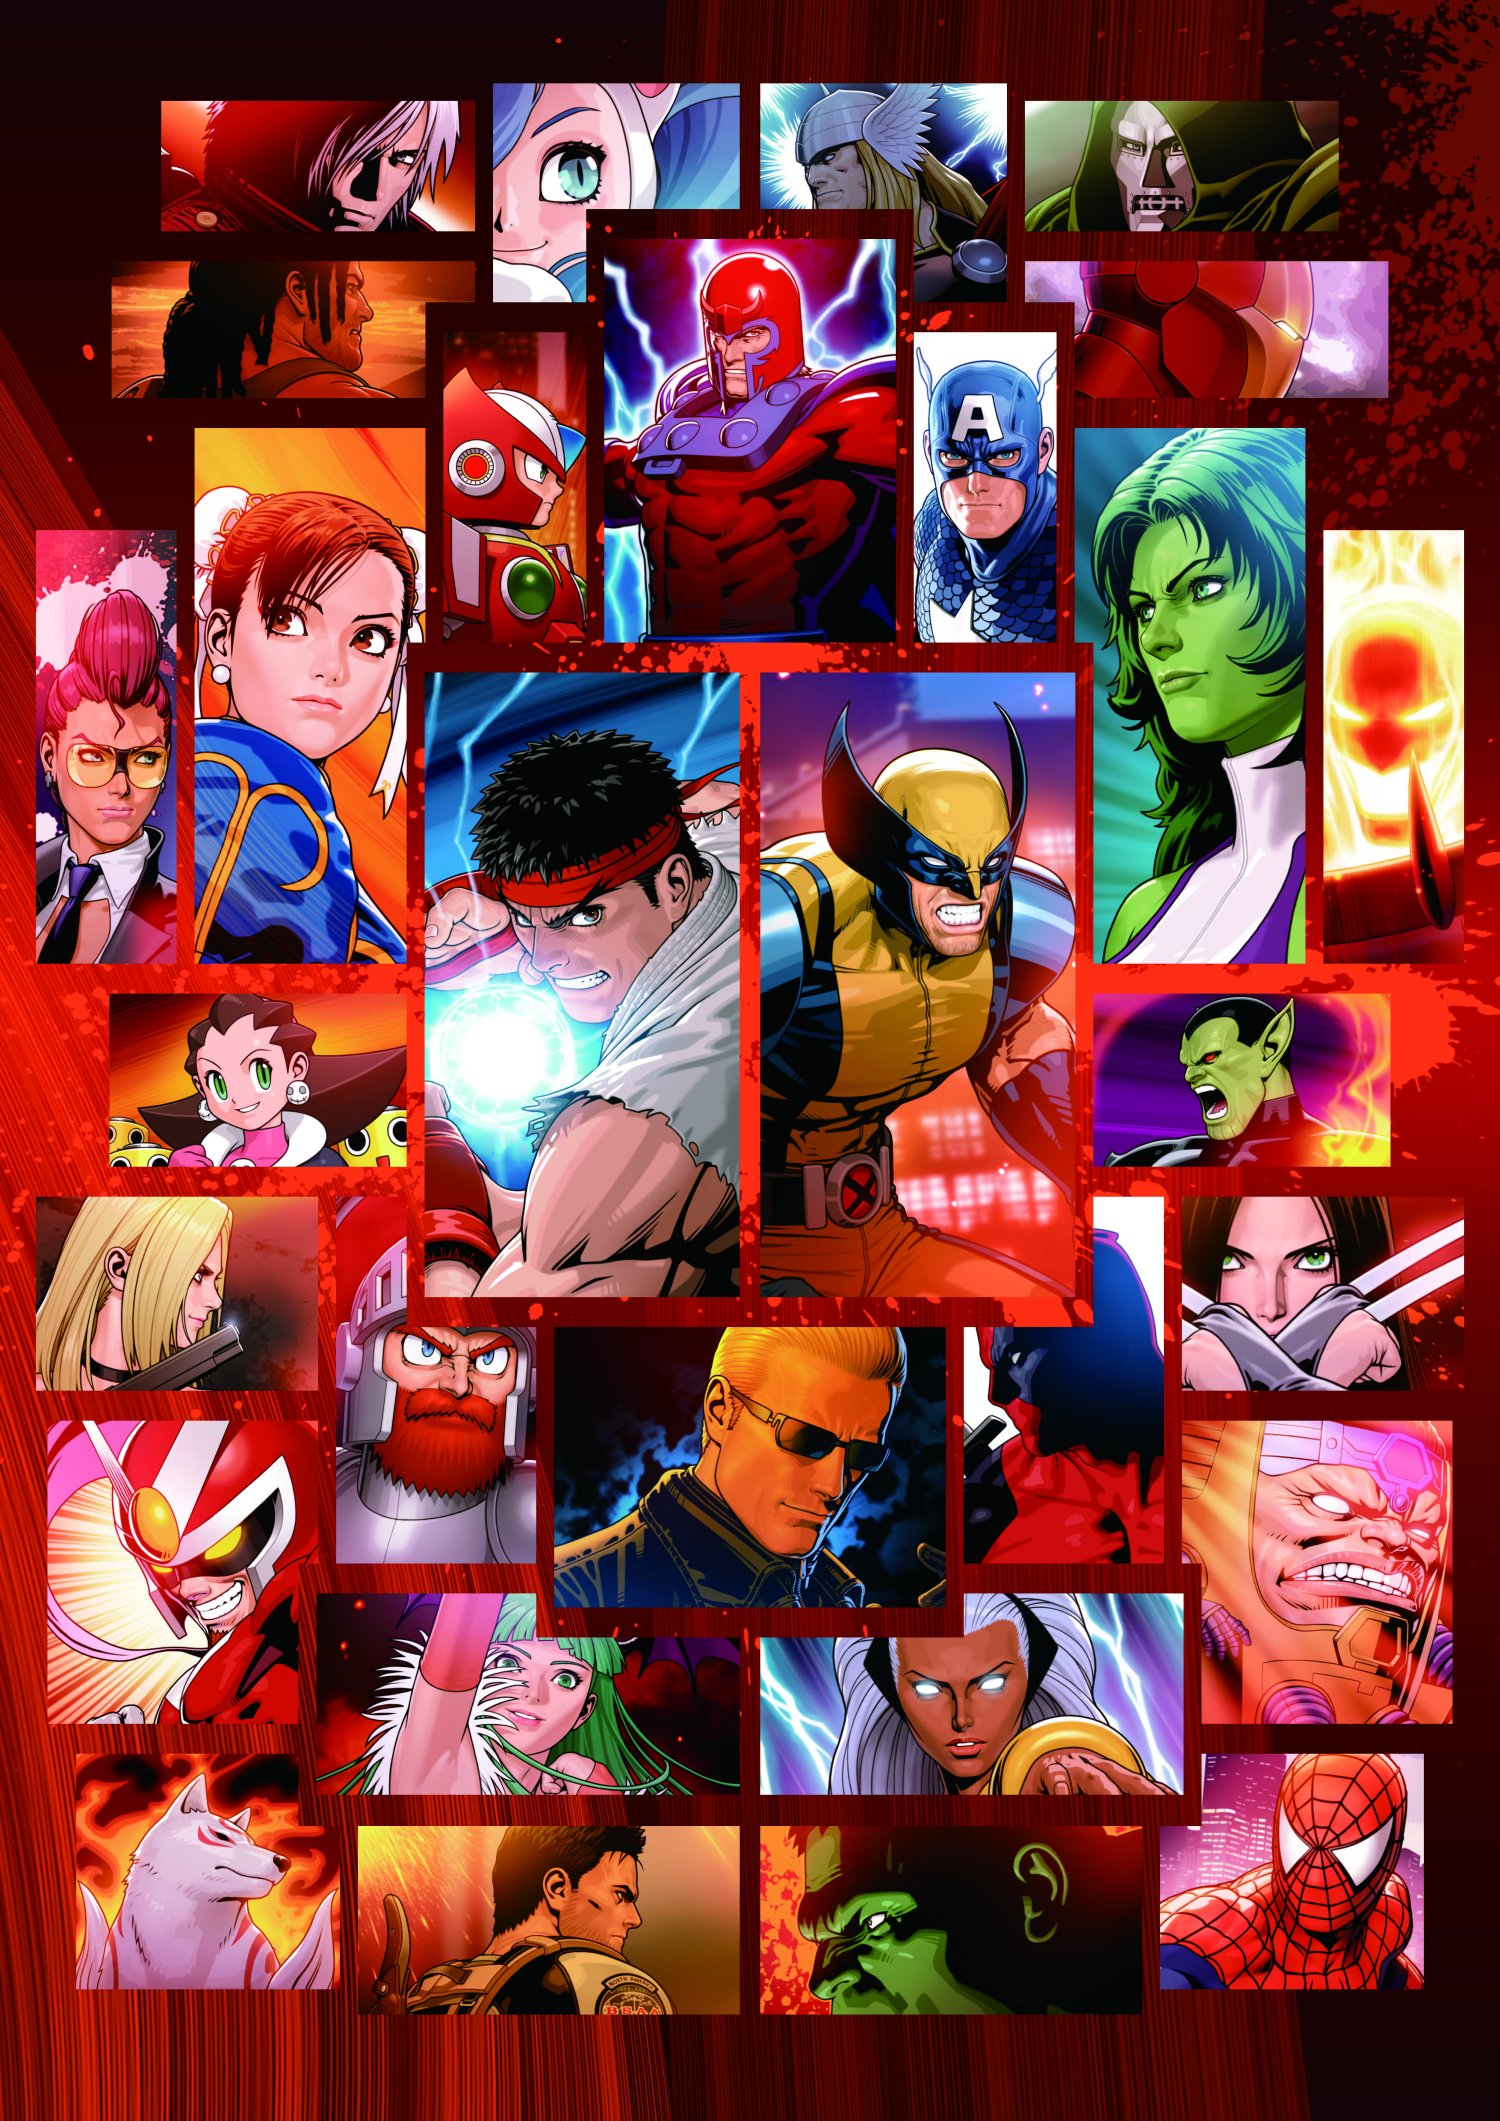 Marvel vs. Capcom 3 Art Gallery 6 out of 16 image gallery